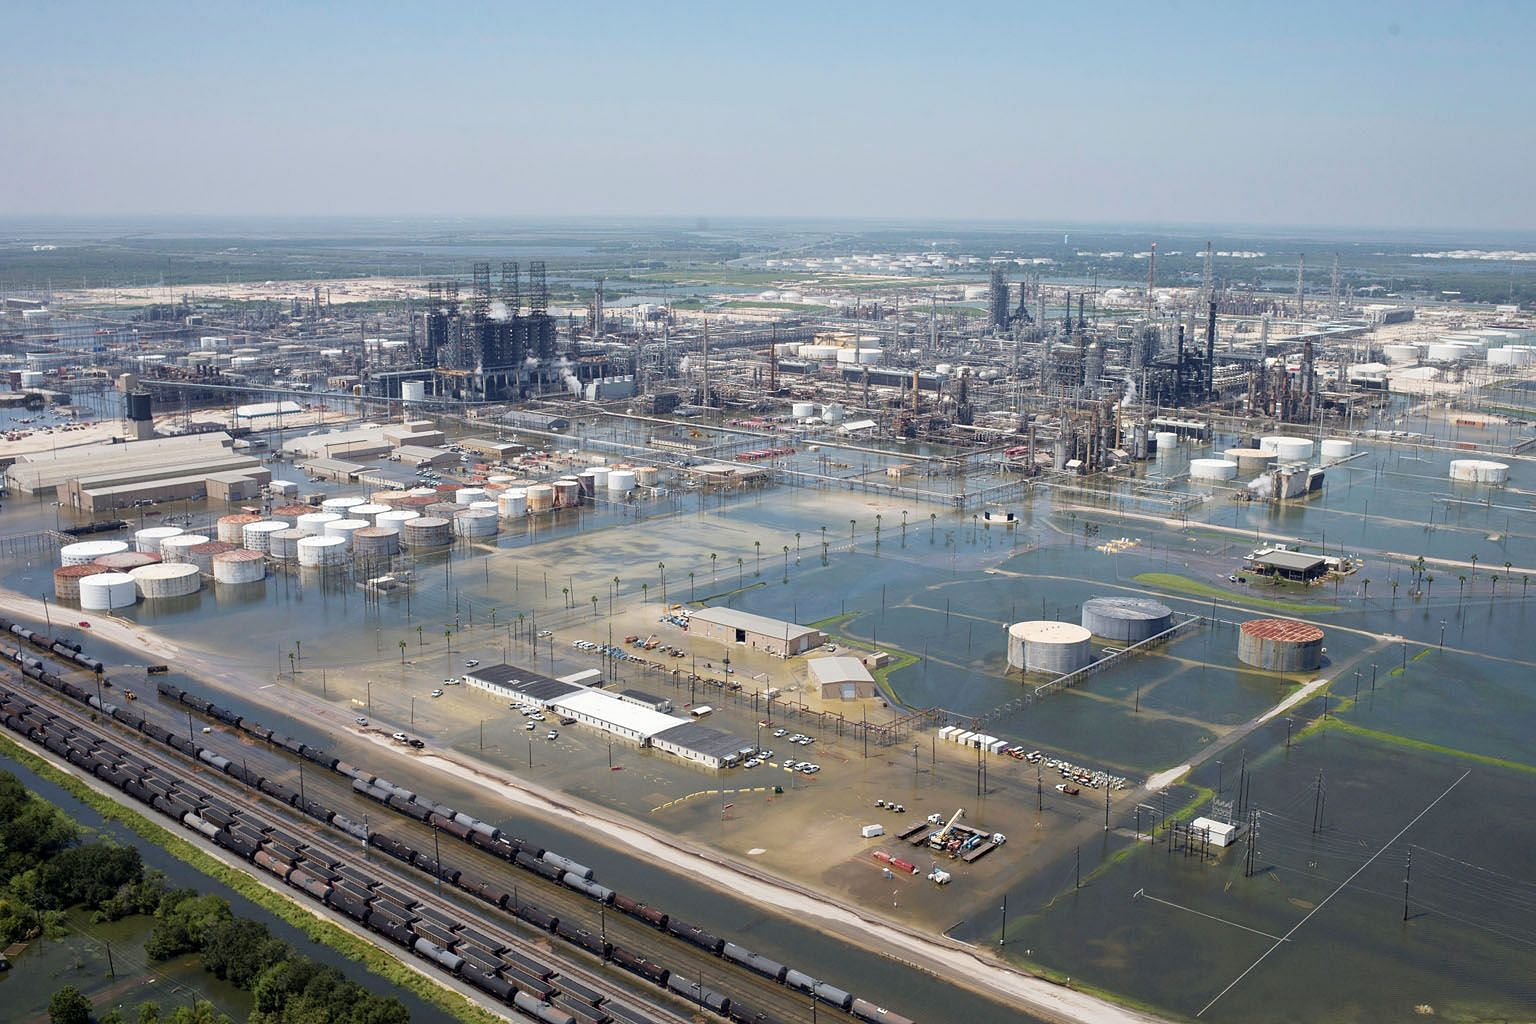 Flood waters have damaged parts of refiner Motiva Enterprises in Texas.